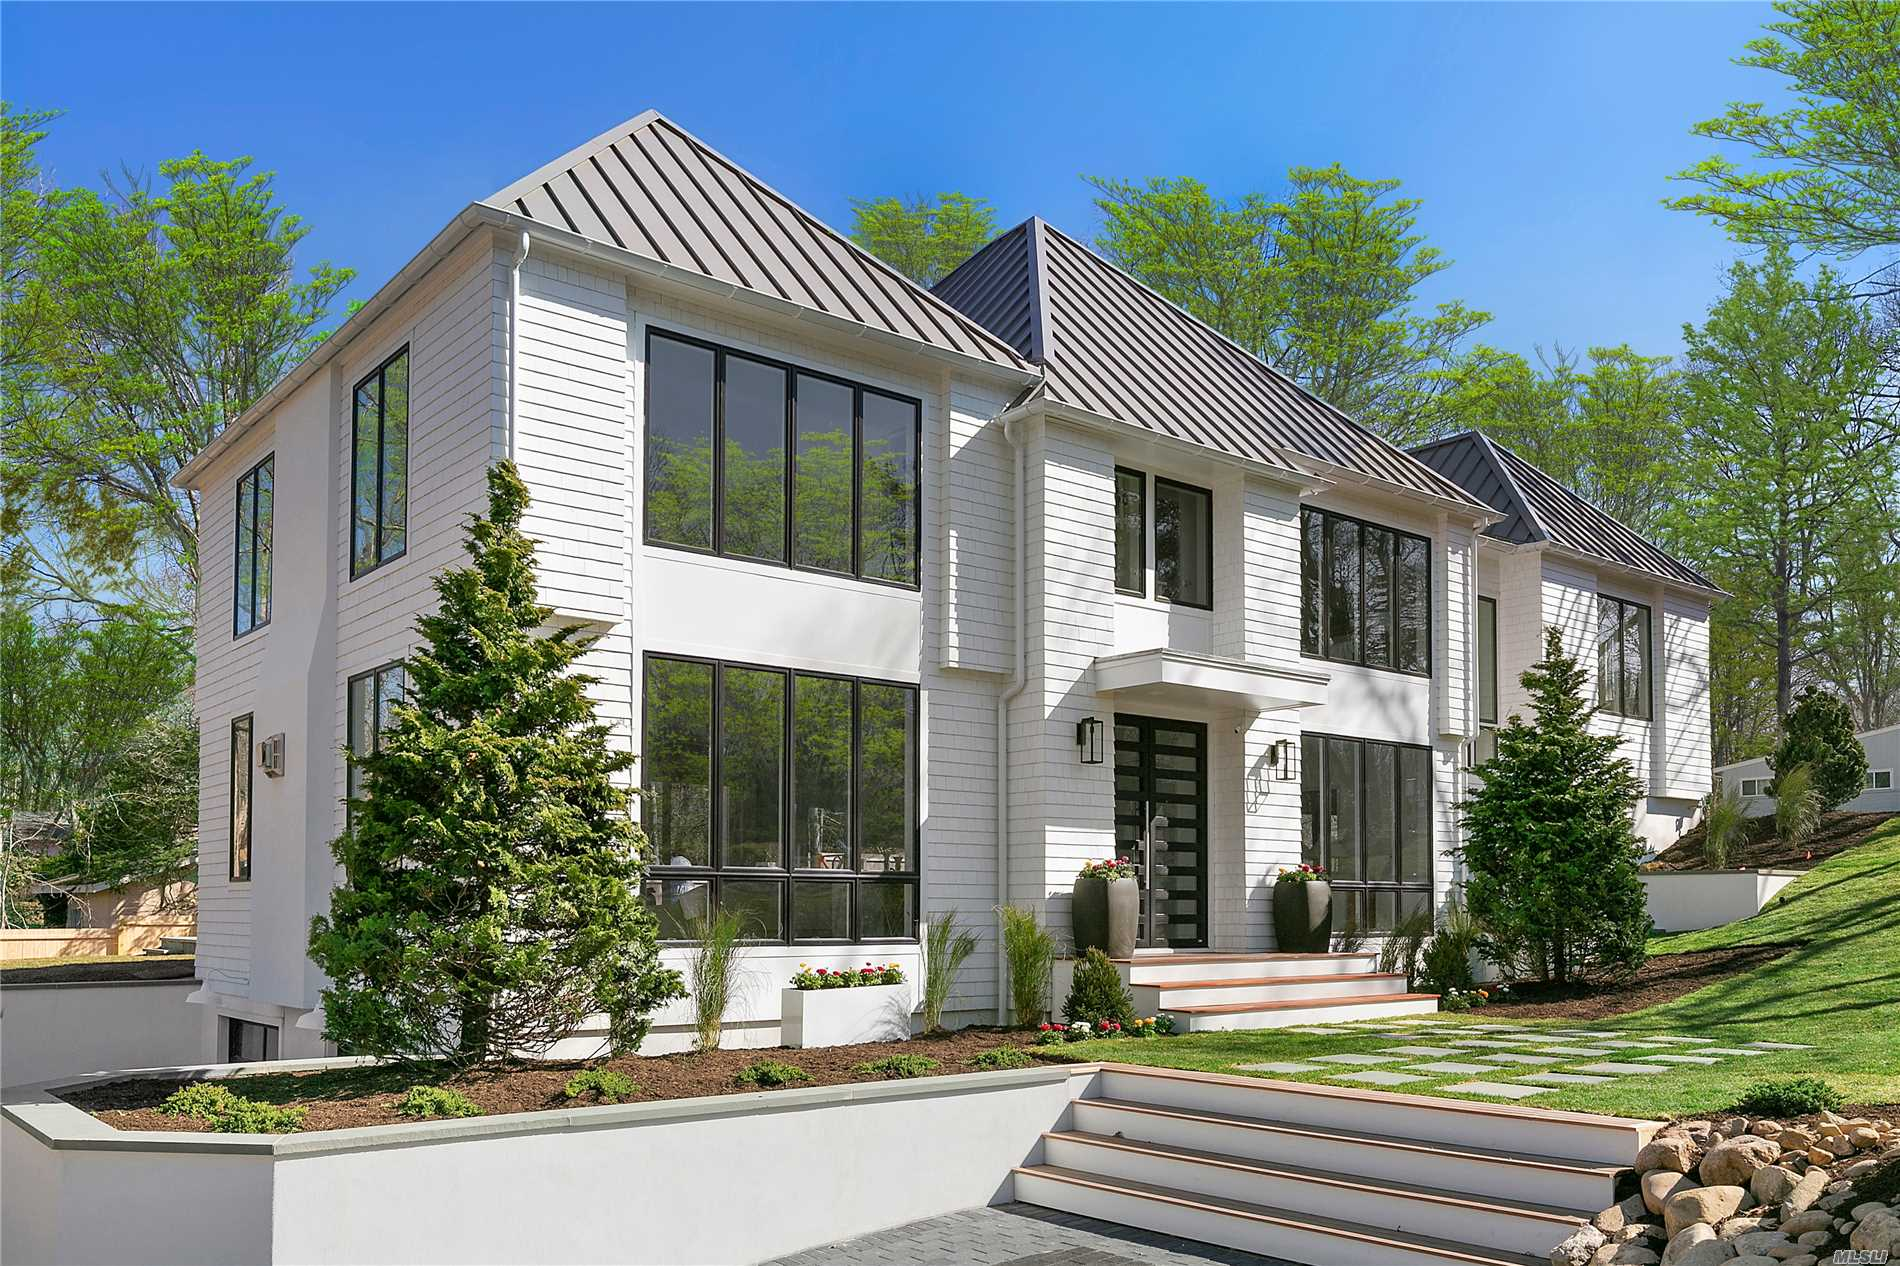 Situated in a private community within the Village of Sag Harbor, newly constructed 5 BR, 5.5 BTH 4, 000+ sf foot home. Main floor has open floor plan for living/Dining and easy entertaining, opens to sun filled yard with extensive bluestone decking, heated gunite salt water pool and large grassy areas beautifully landscaped. Upper level boasts Master bedroom Suite, 4 addt'l BR's all en-suite, waterworks fixtures throughout, Finished Lower level w/wet bar, oversized 2 car garage, Don't miss this!